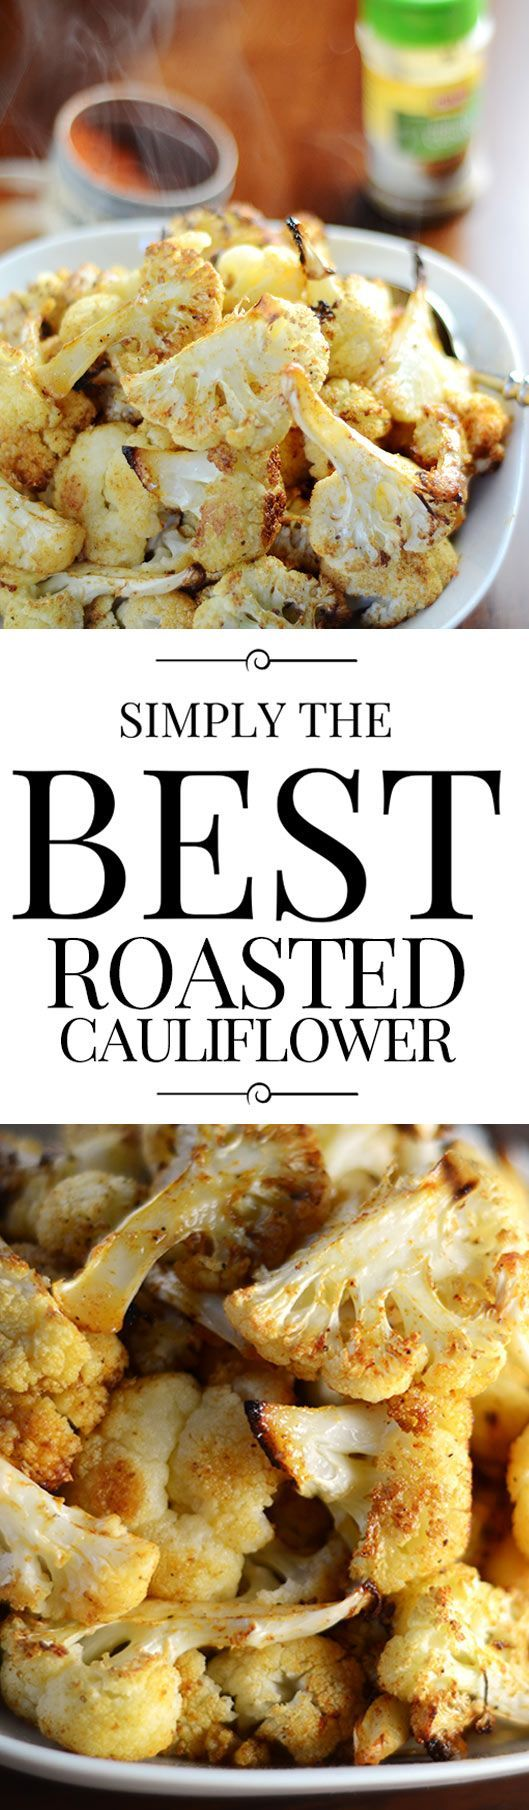 Roasting cauliflower is easy, fun and makes a delicious veggie side dish. Preparation is minimal with maximum flavors too!